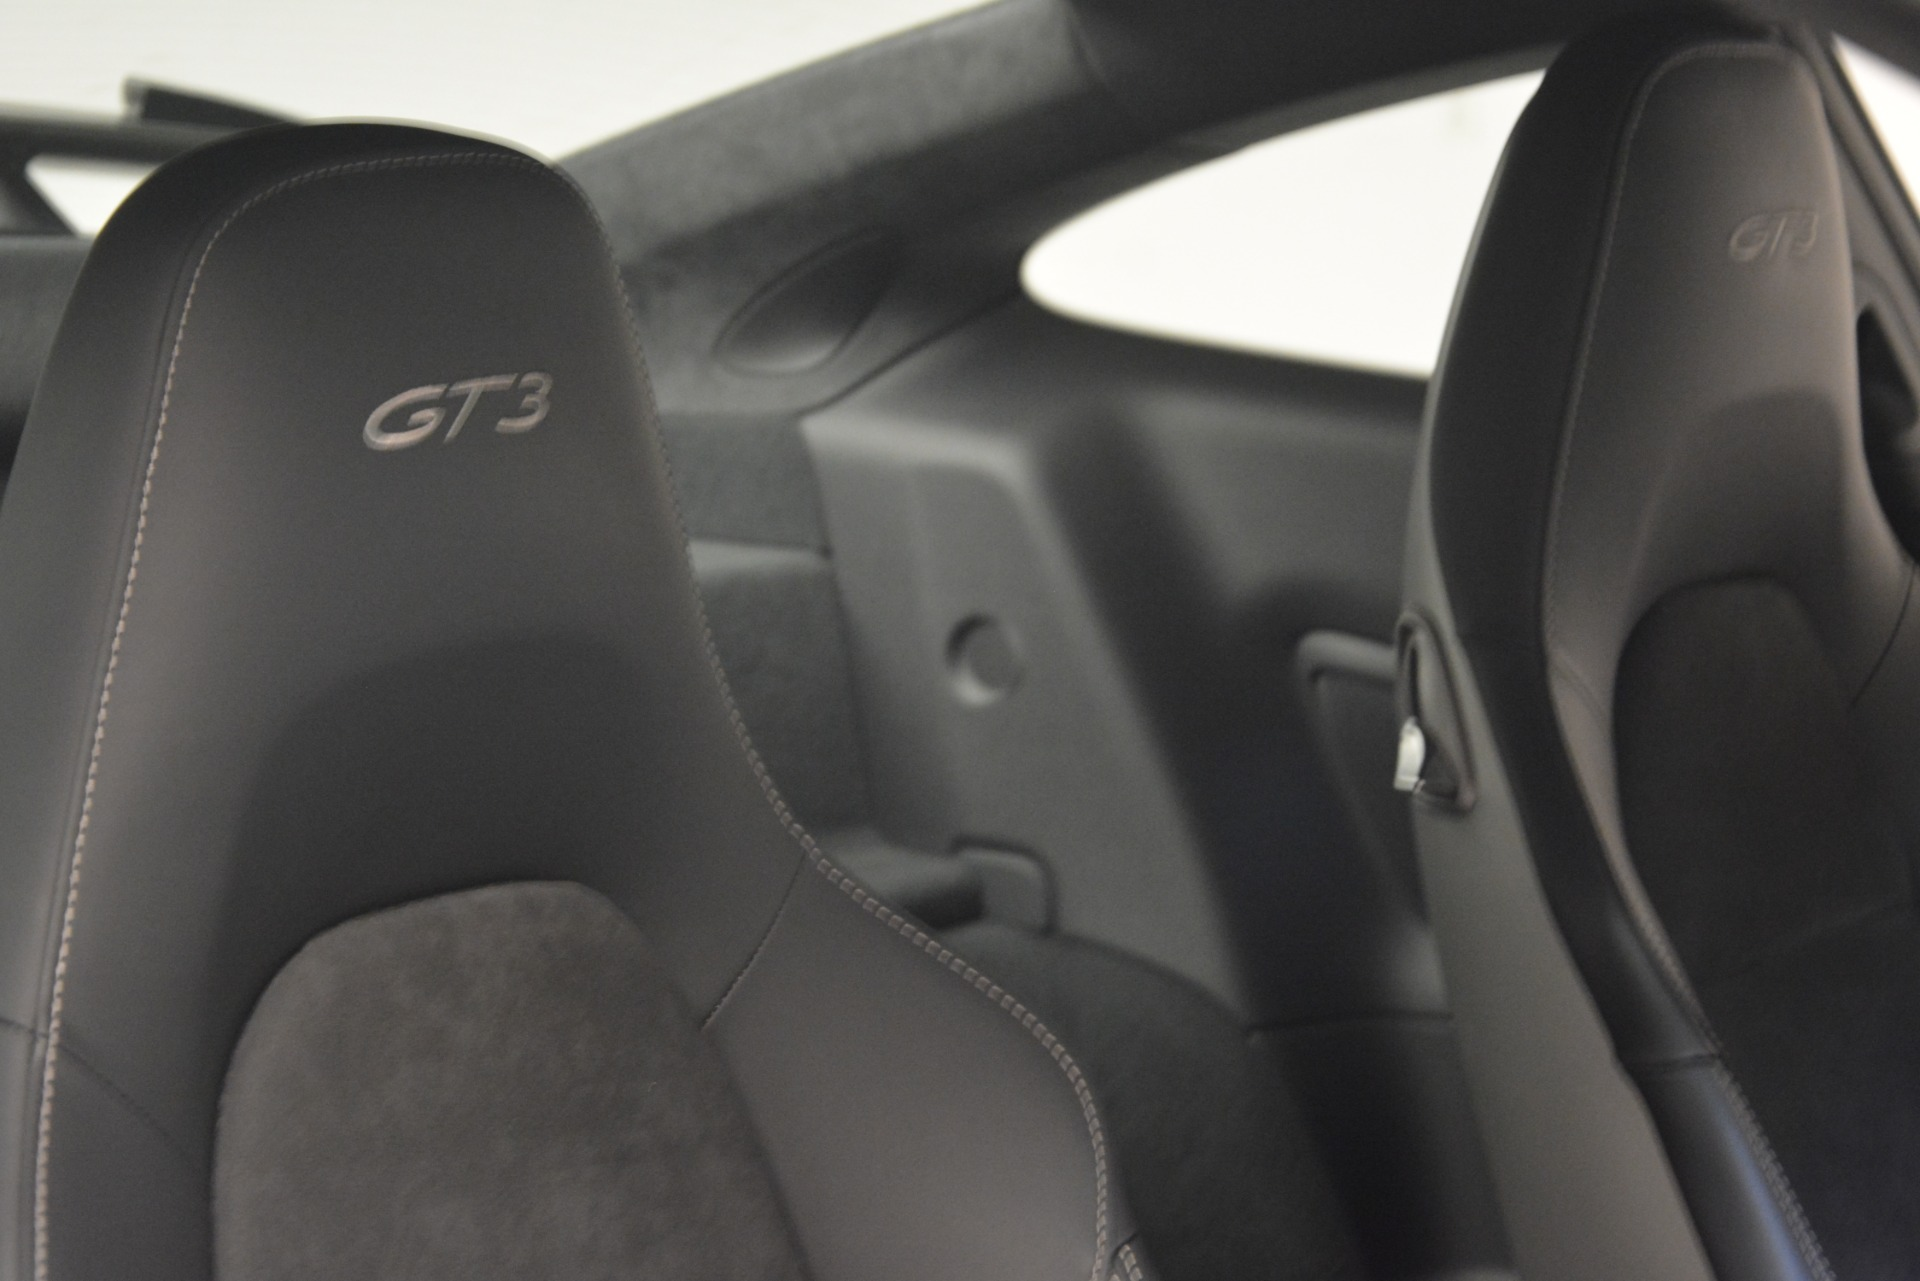 Used 2015 Porsche 911 GT3 For Sale In Greenwich, CT 3009_p22